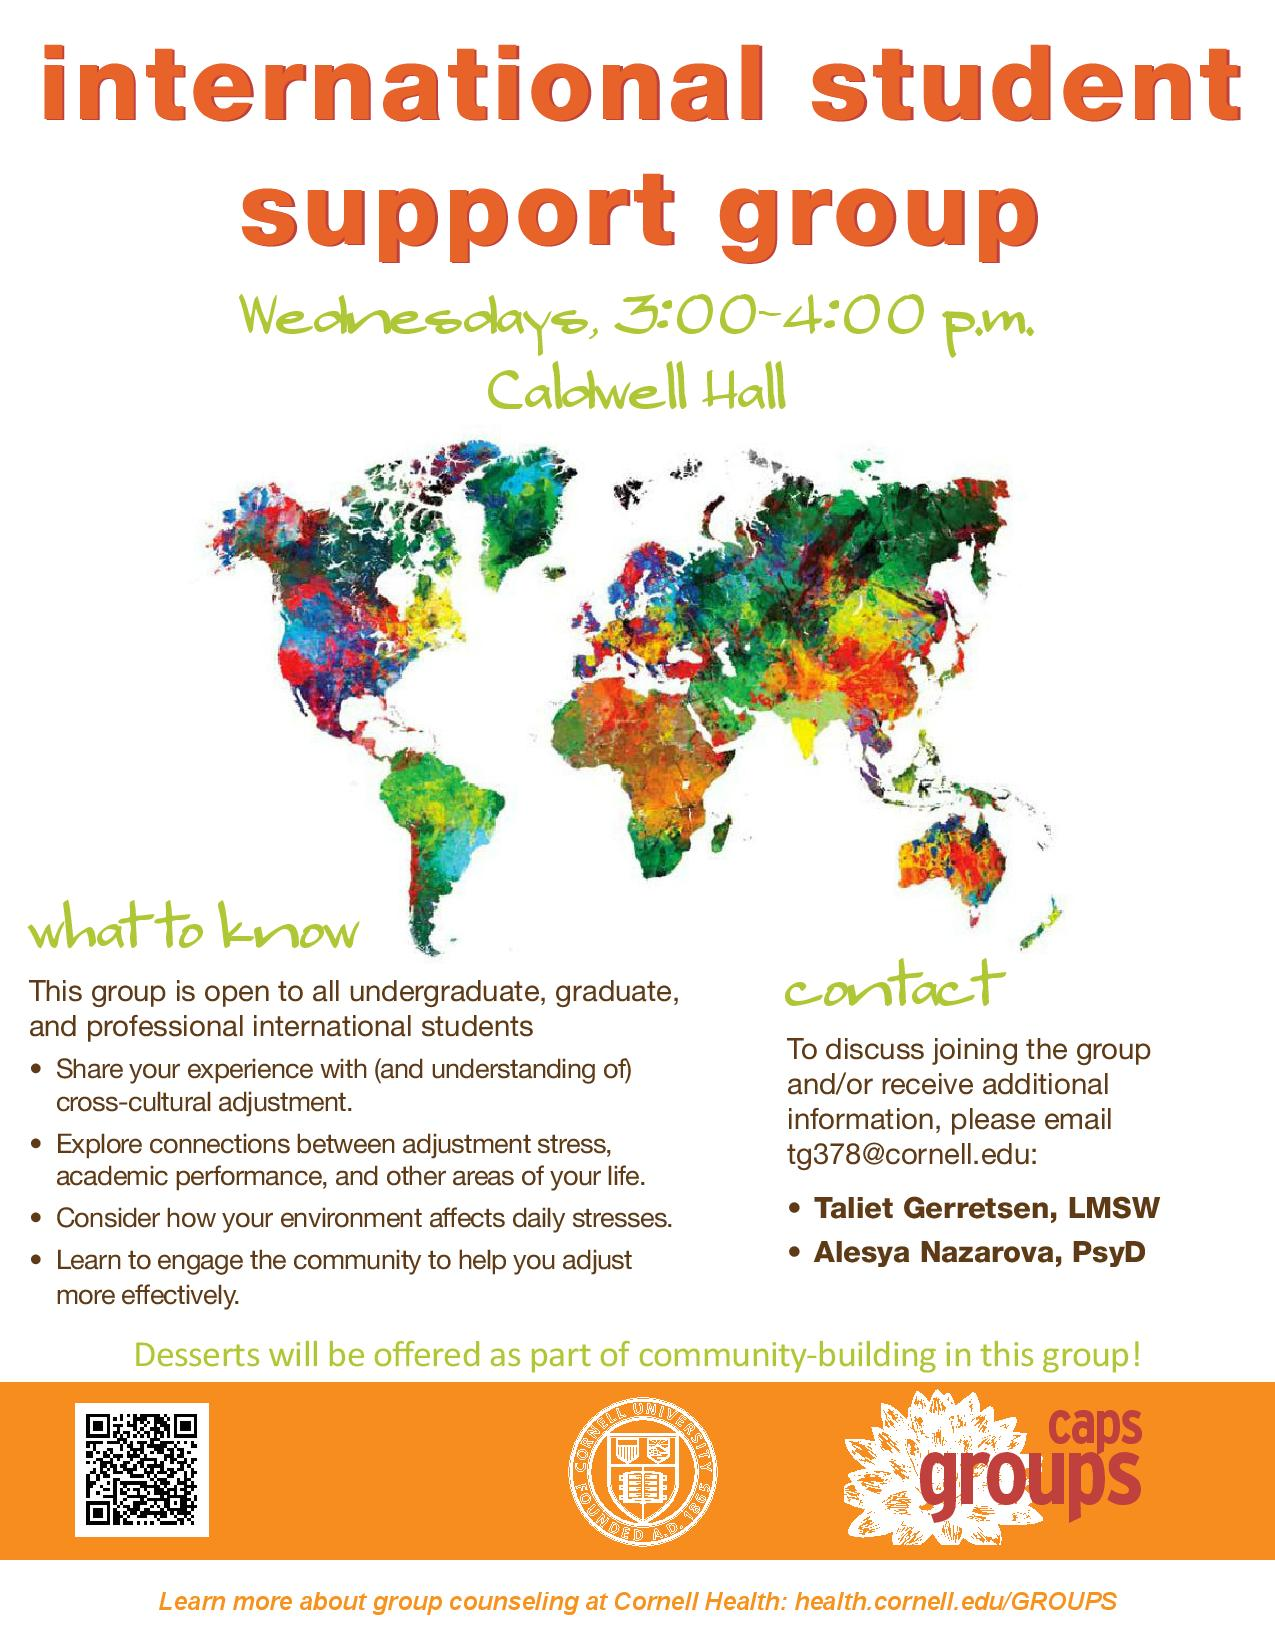 International Student Group Counseling